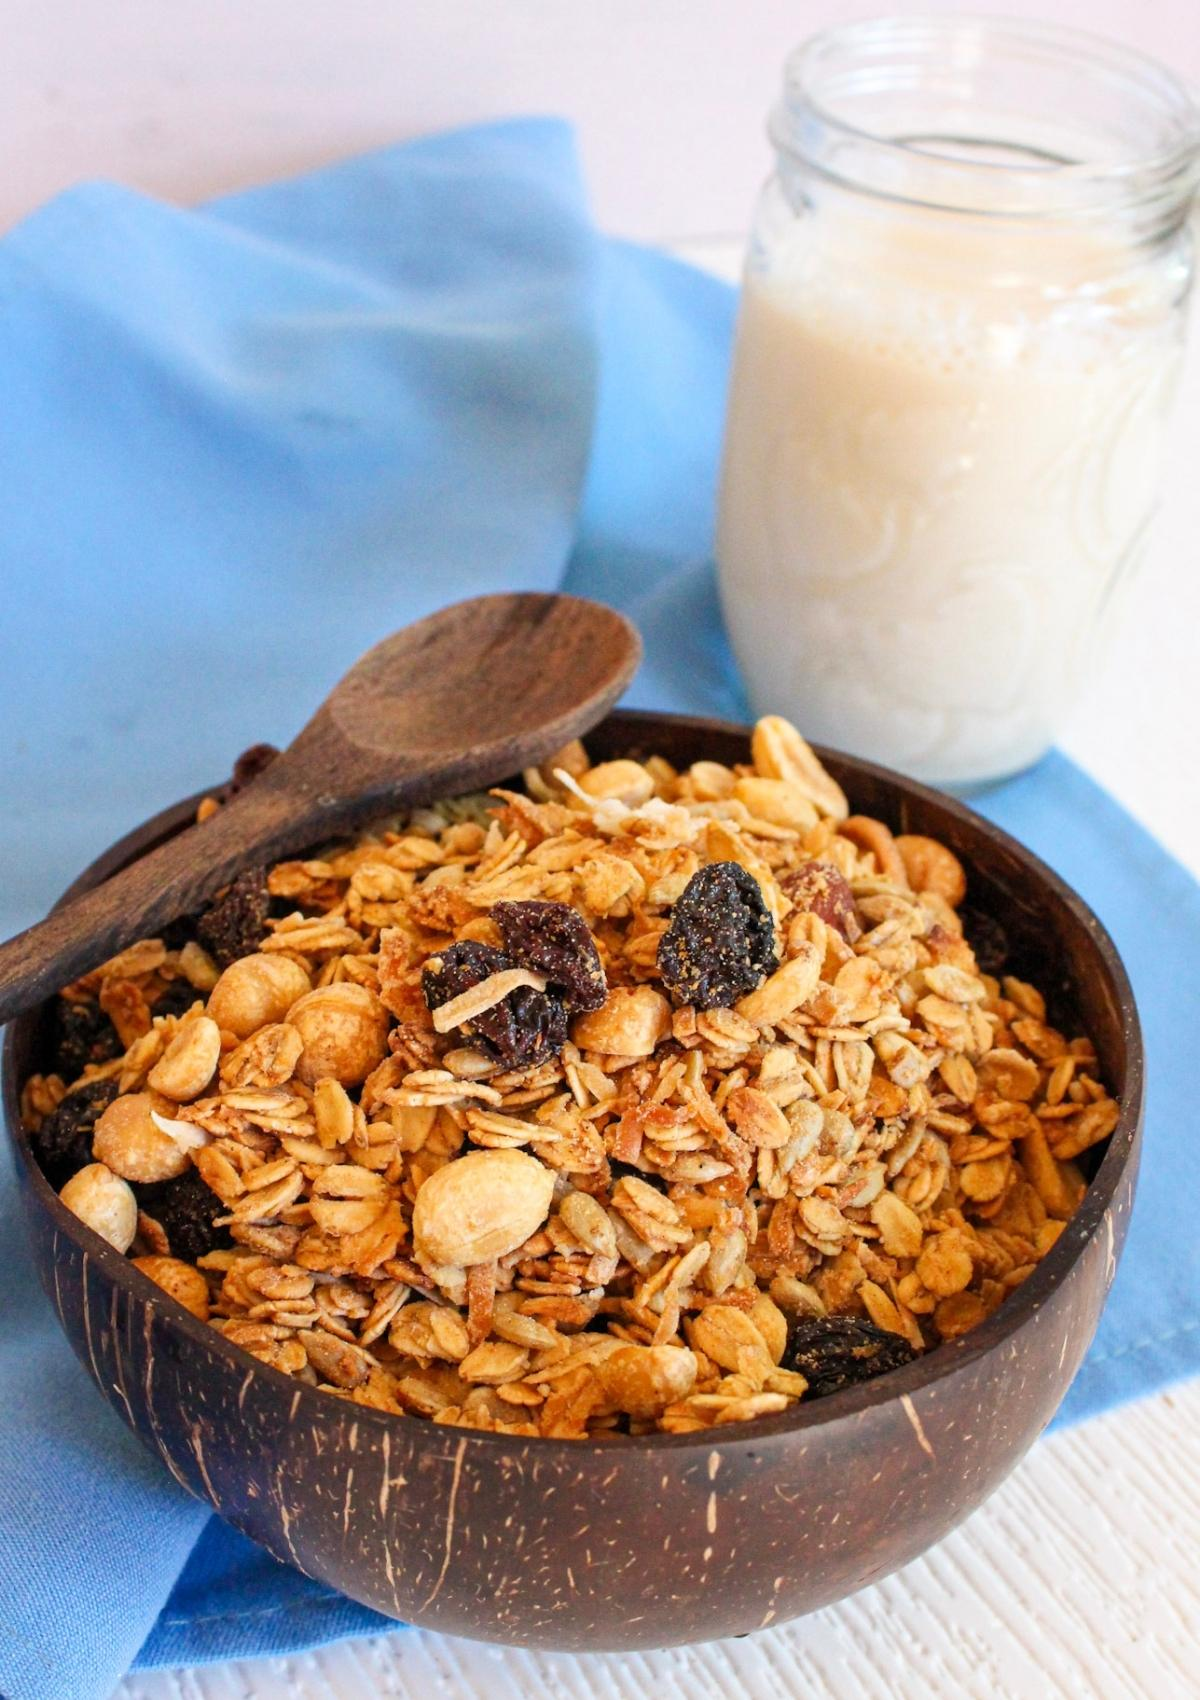 Vegan granola in a bowl with a wooden spoon and glass of milk